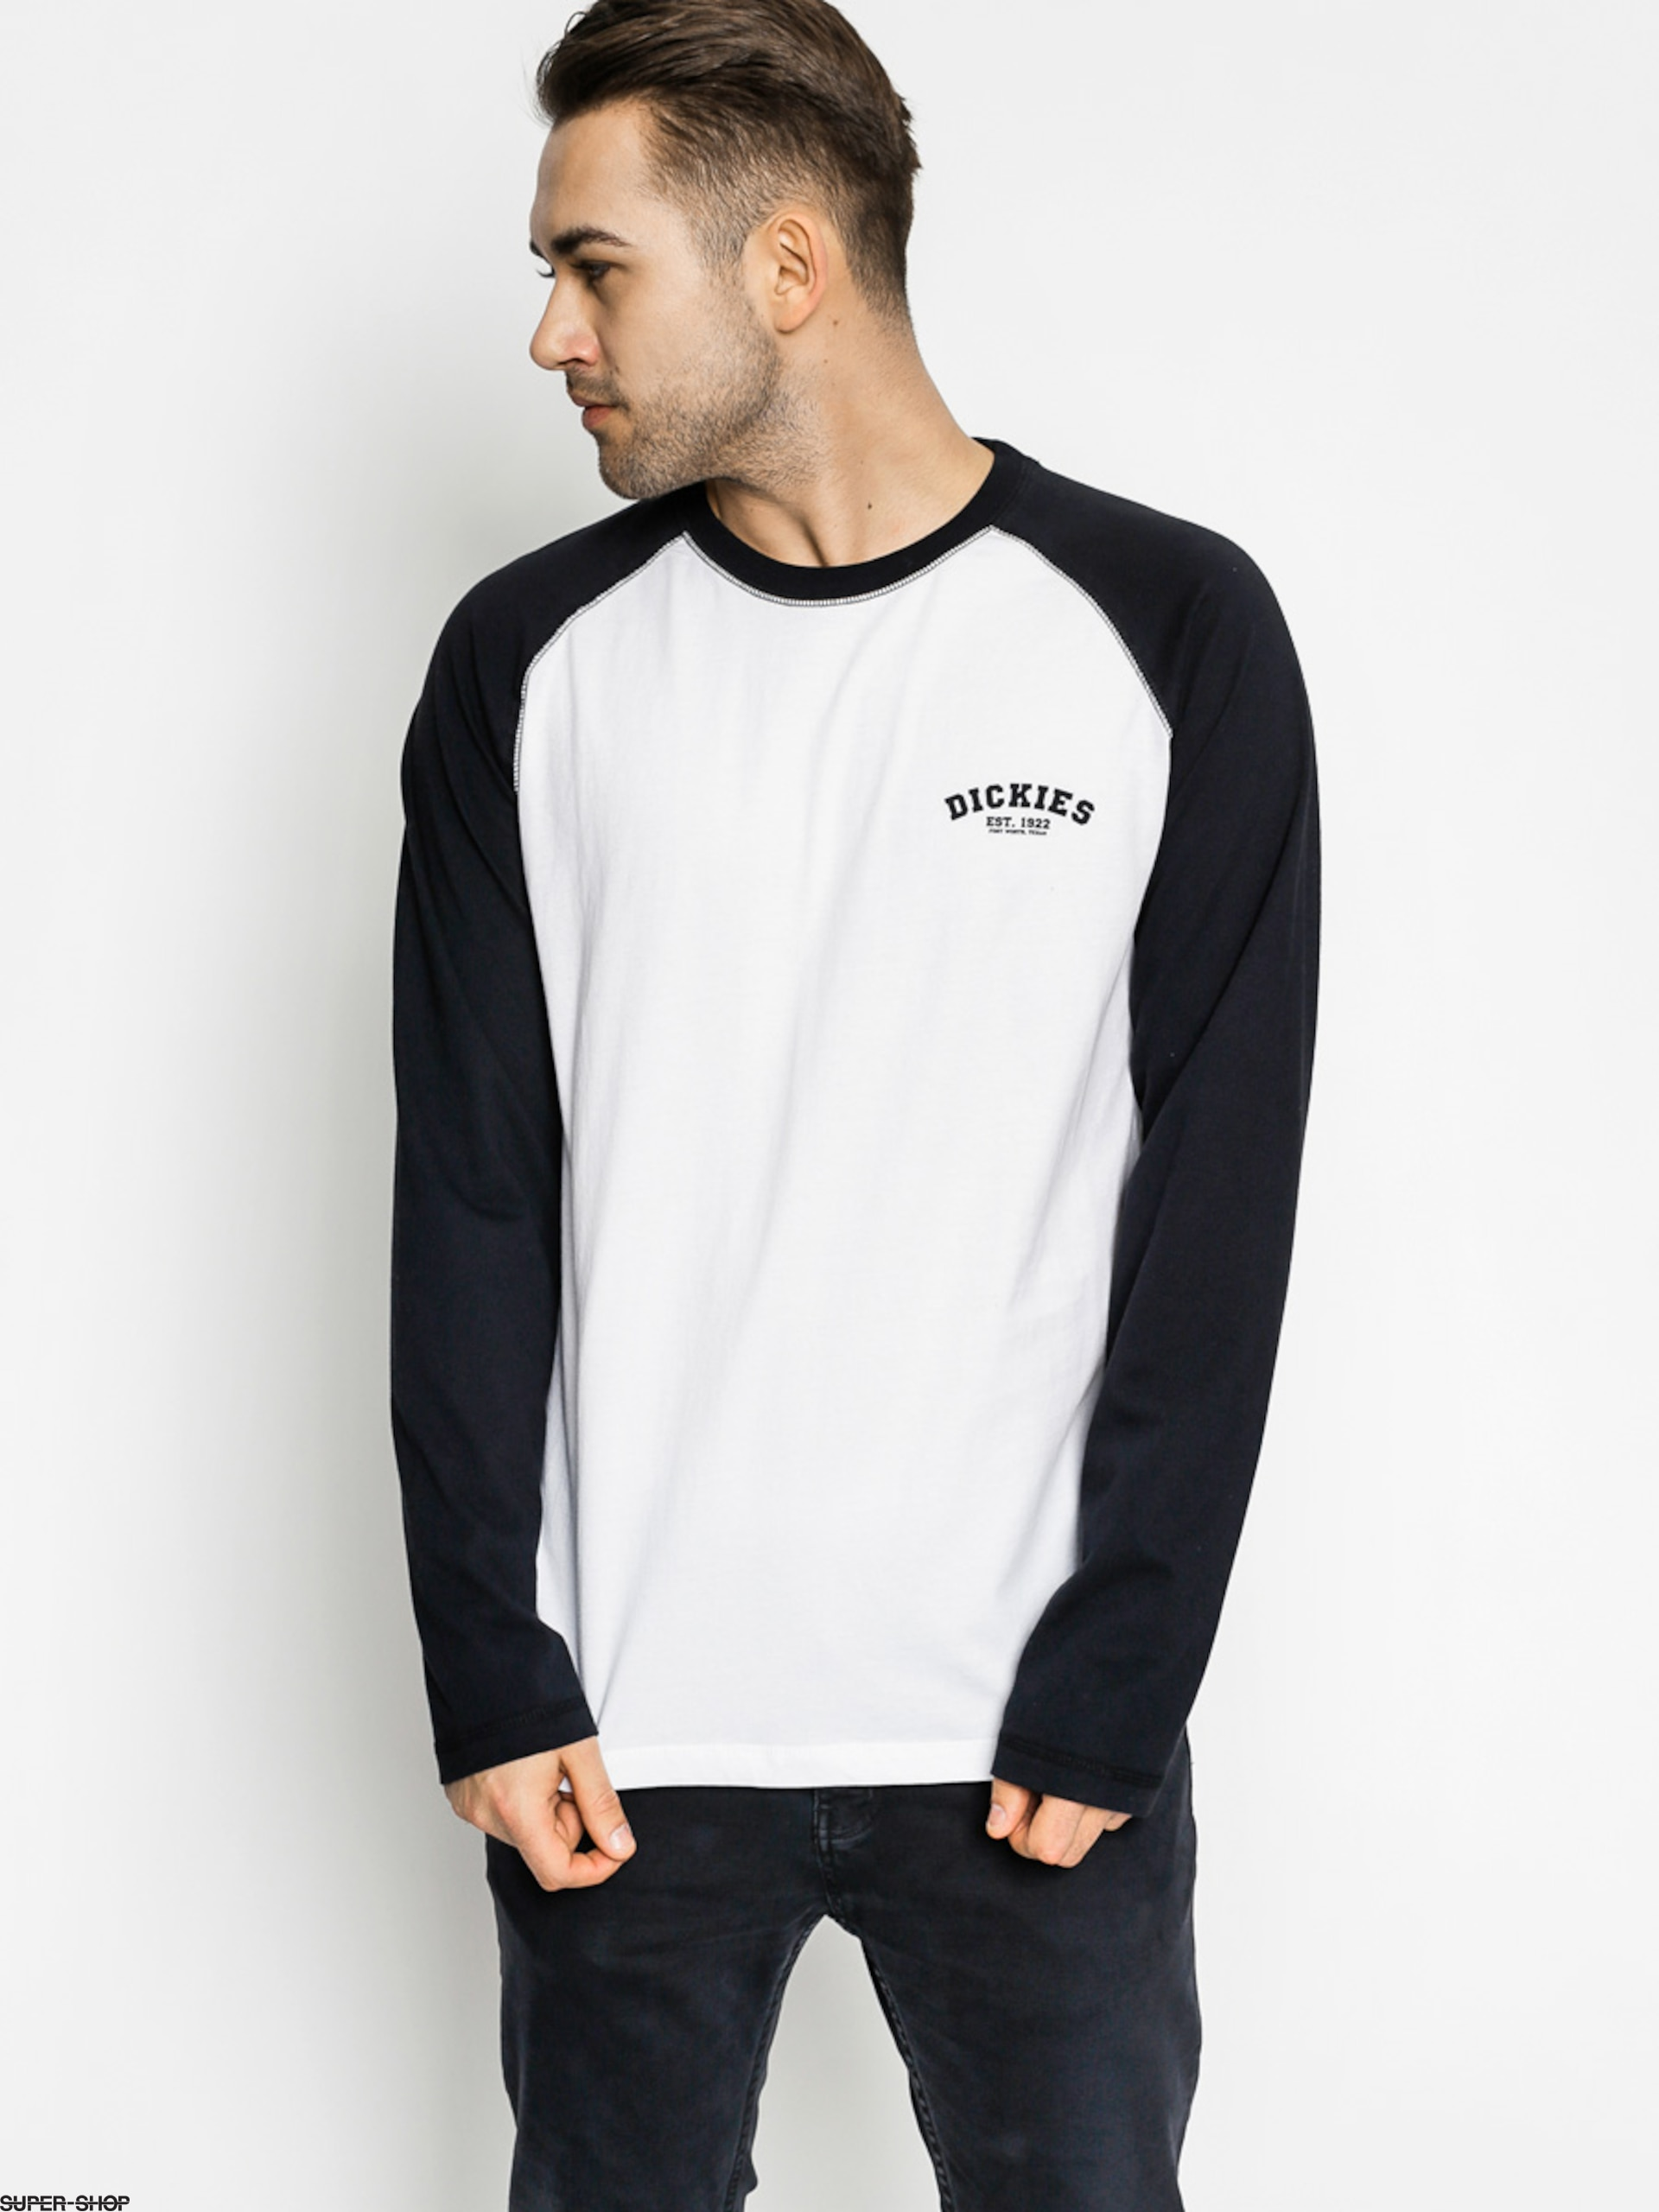 Dickies Longsleeve Baseball (black/white)